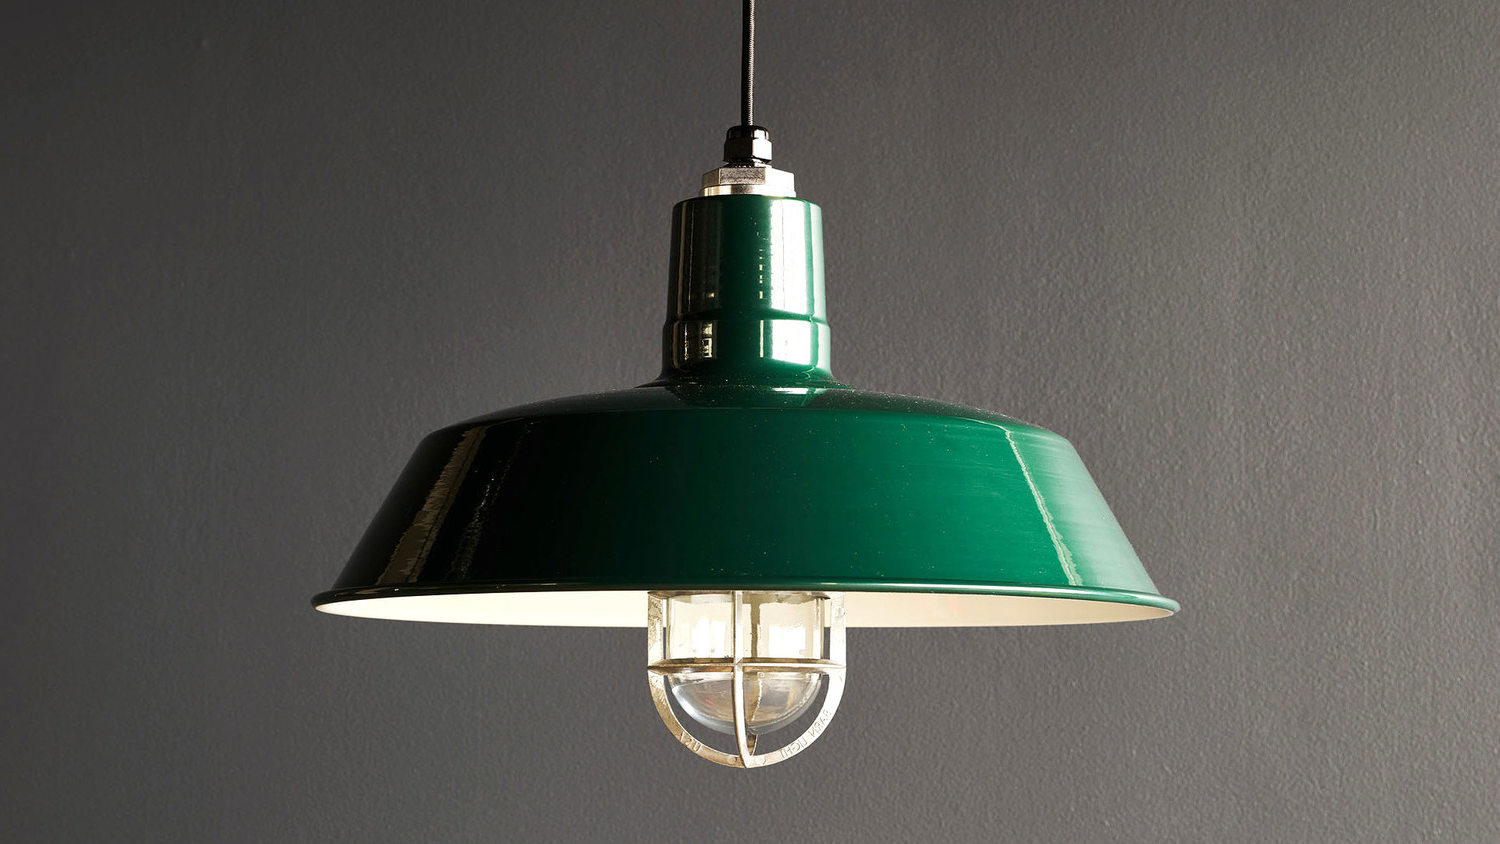 Most Recent The Best Fall Sales: Red Barrel Studio Crofoot 9 Light In Crofoot 5 Light Shaded Chandeliers (View 18 of 25)